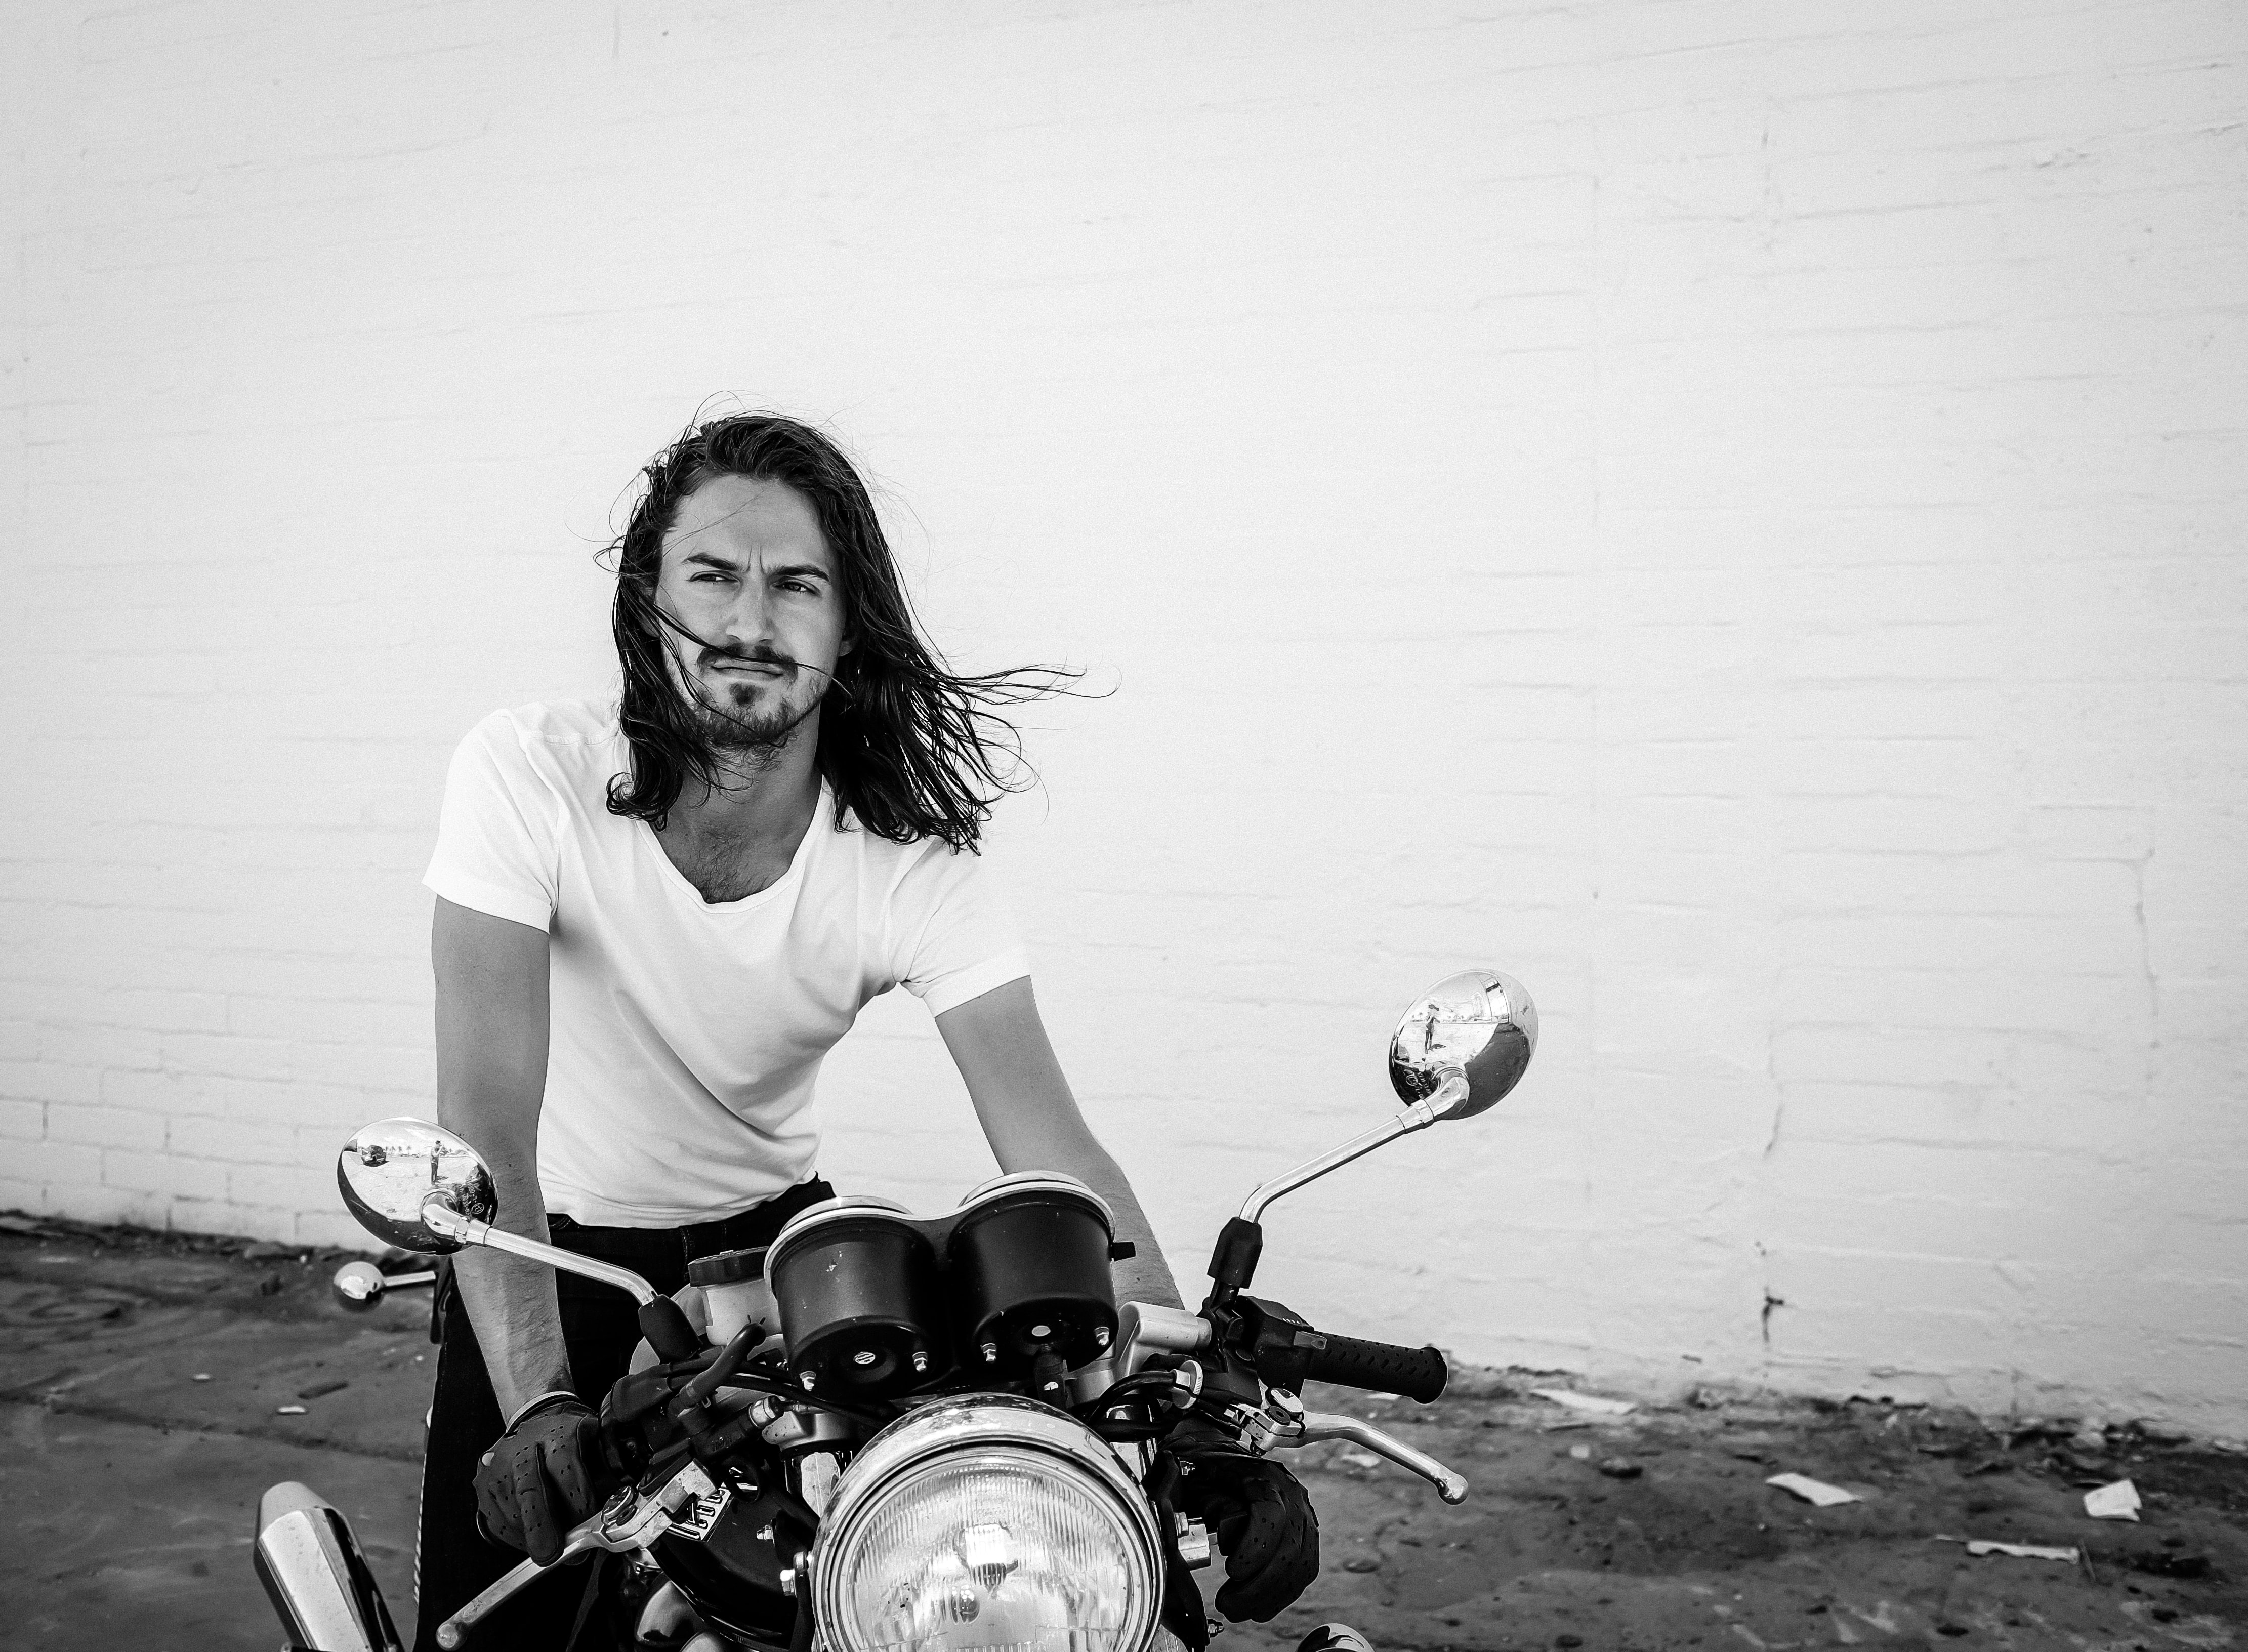 Black and white shot of attractive long haired man in white t shirt with motorbike